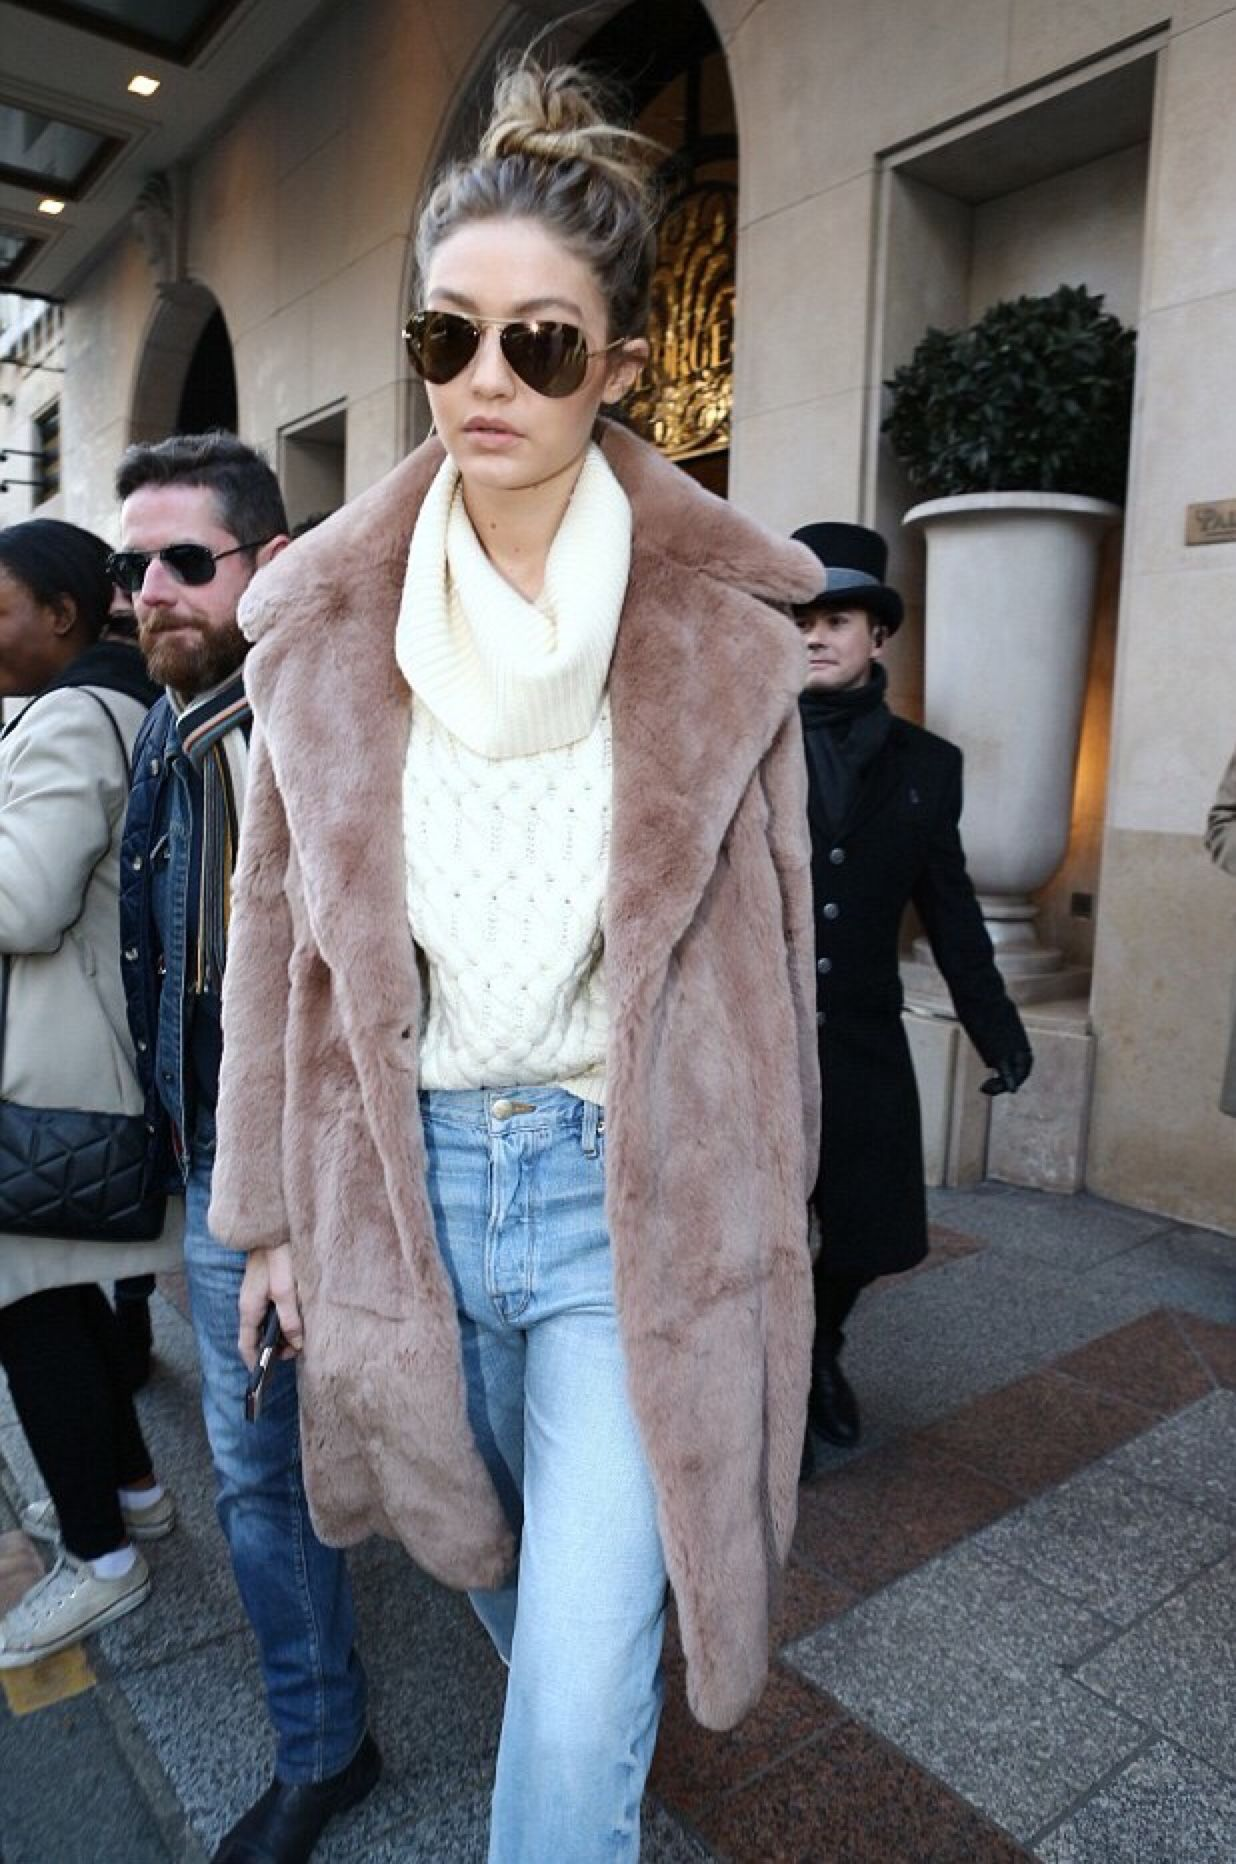 Gigi looked so great in a white turtleneck sweater, dusty rose fur coat, and light wash jeans.